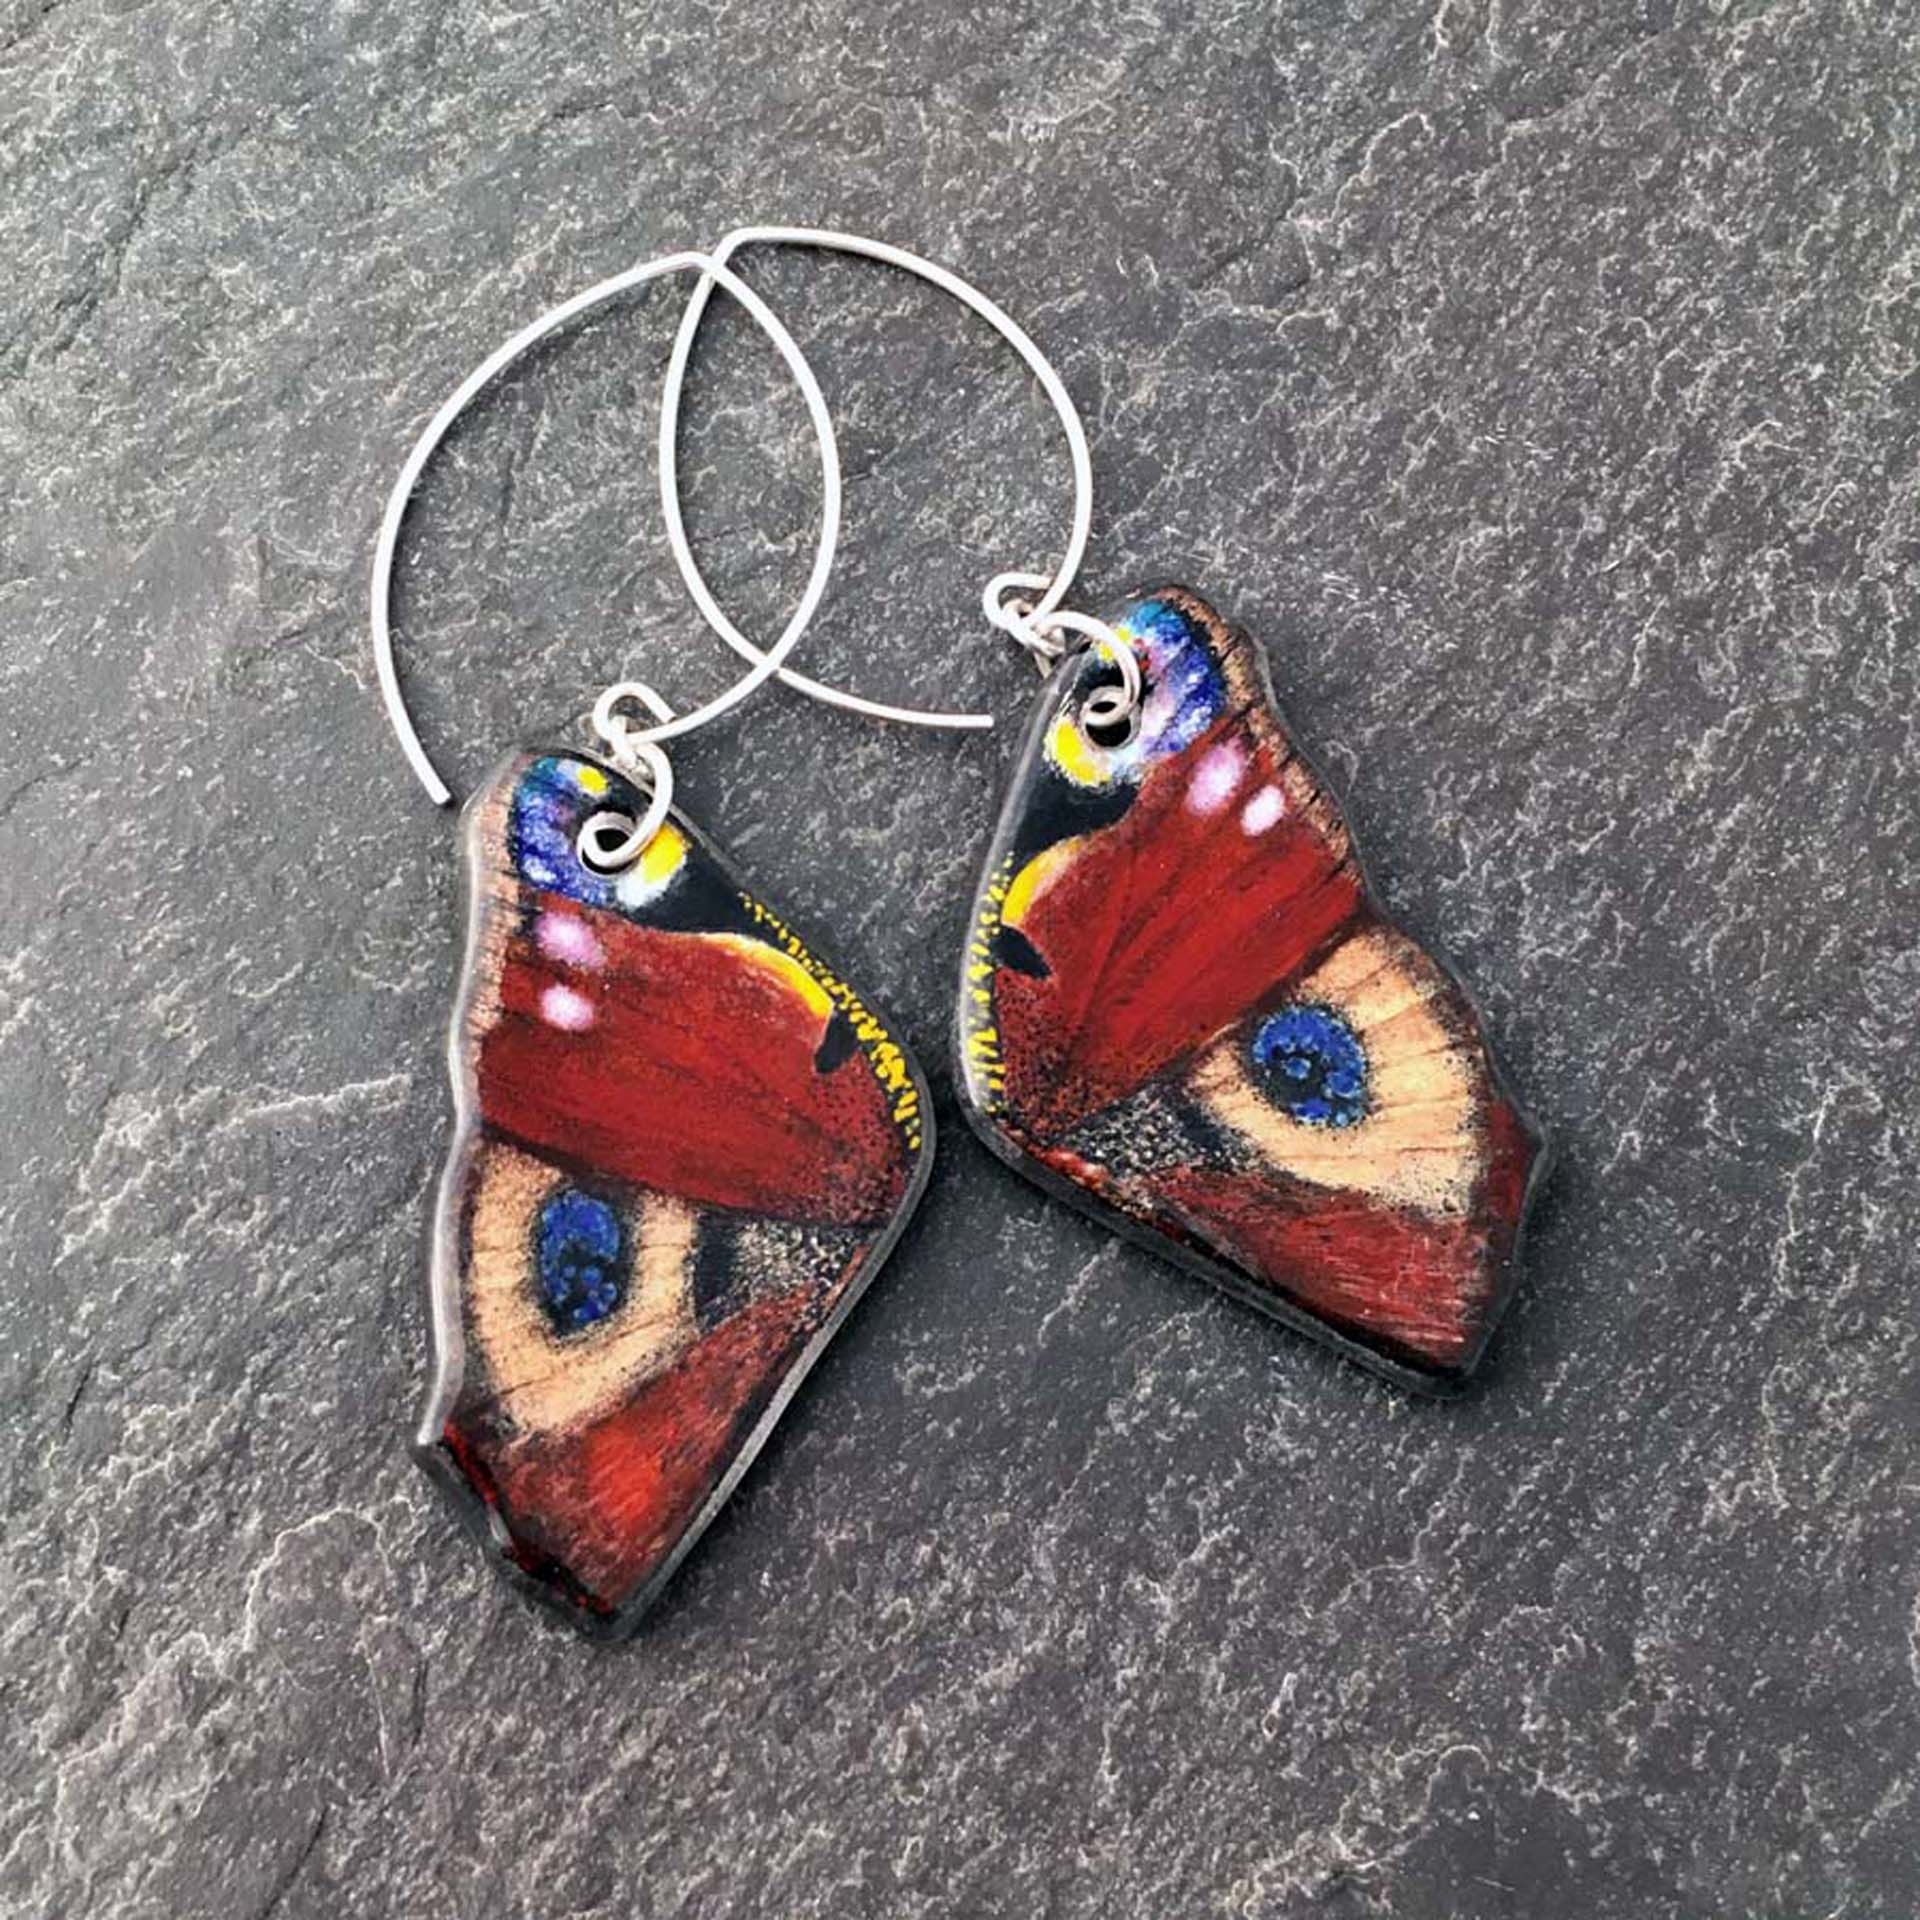 """3. Peacock Butterfly Earrings, kiln formed art glass, 1"""" x 2.5"""" x .25"""", Earrings, image painted with glass enamels, clear art glass, Argentium sterling silver ear wires, $175.00."""